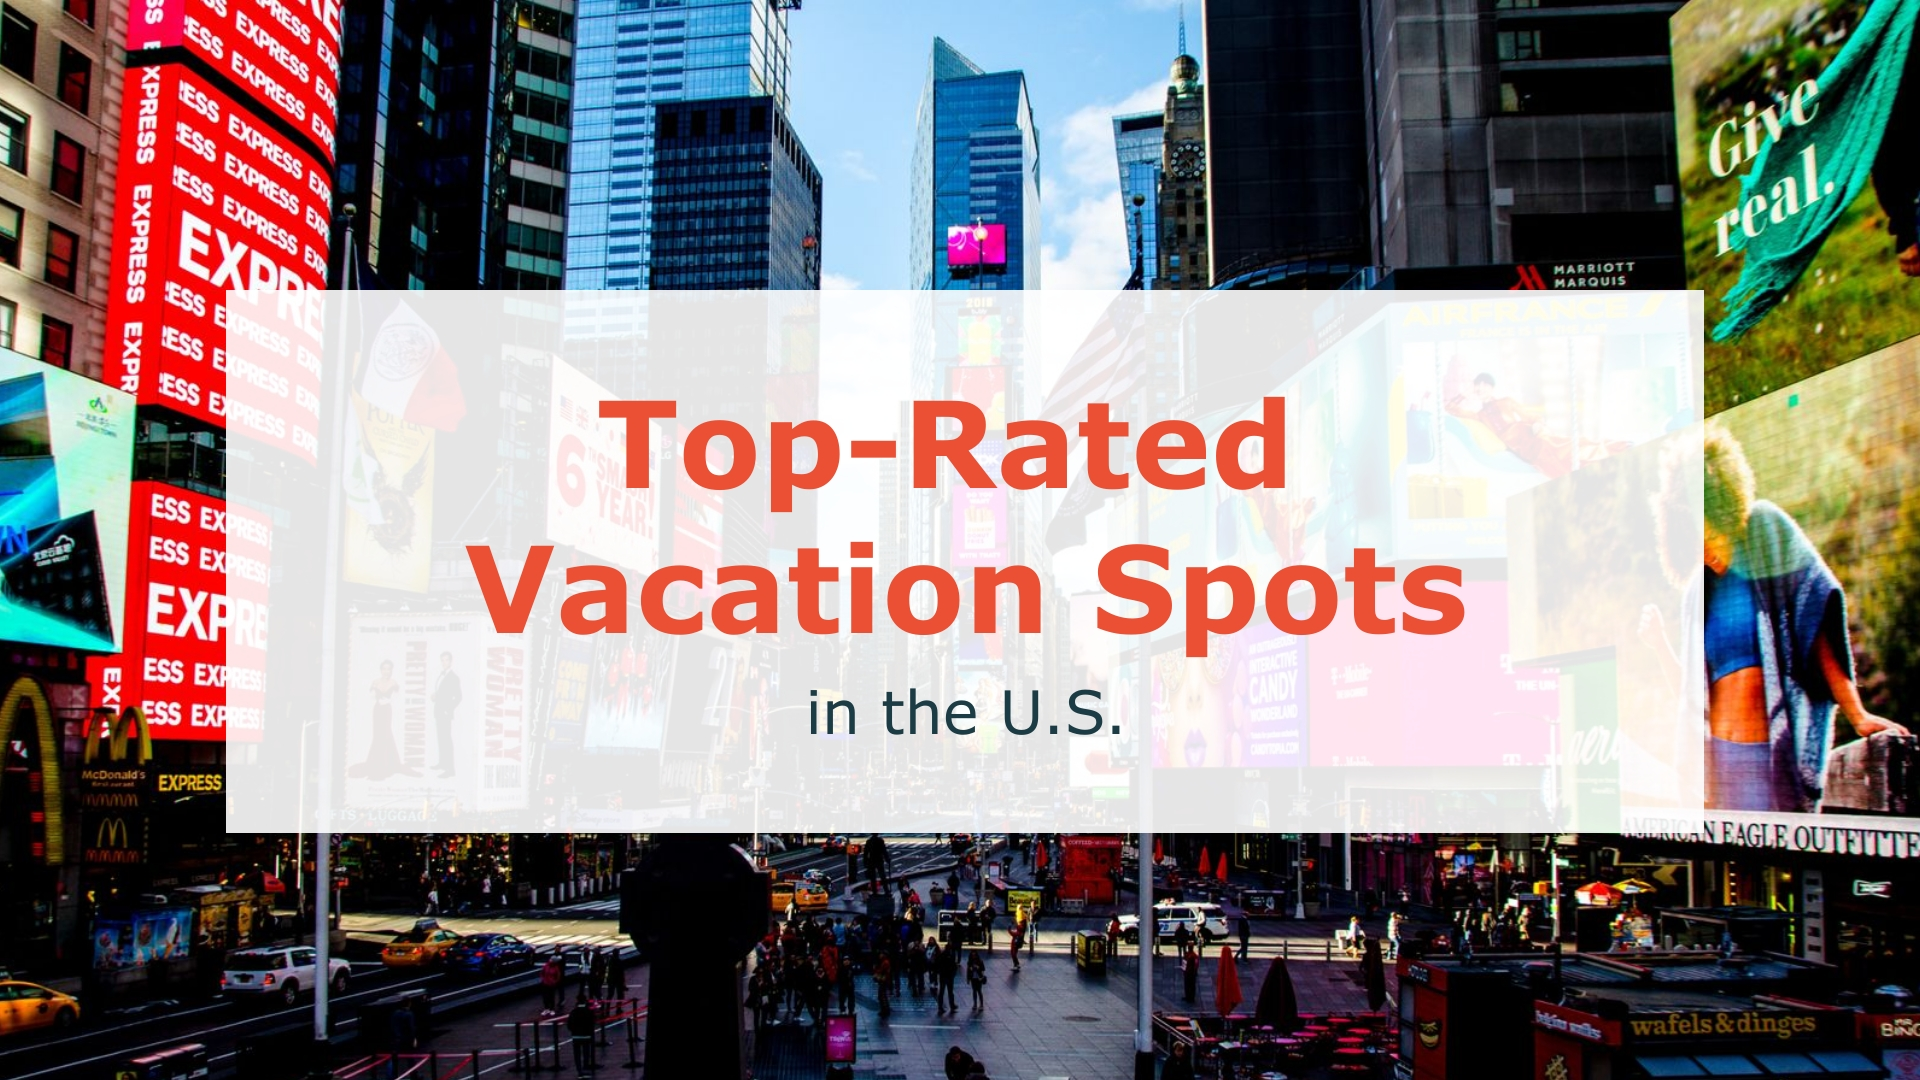 Top-Rated Vacation Spots in the U.S - Listicle Video Template